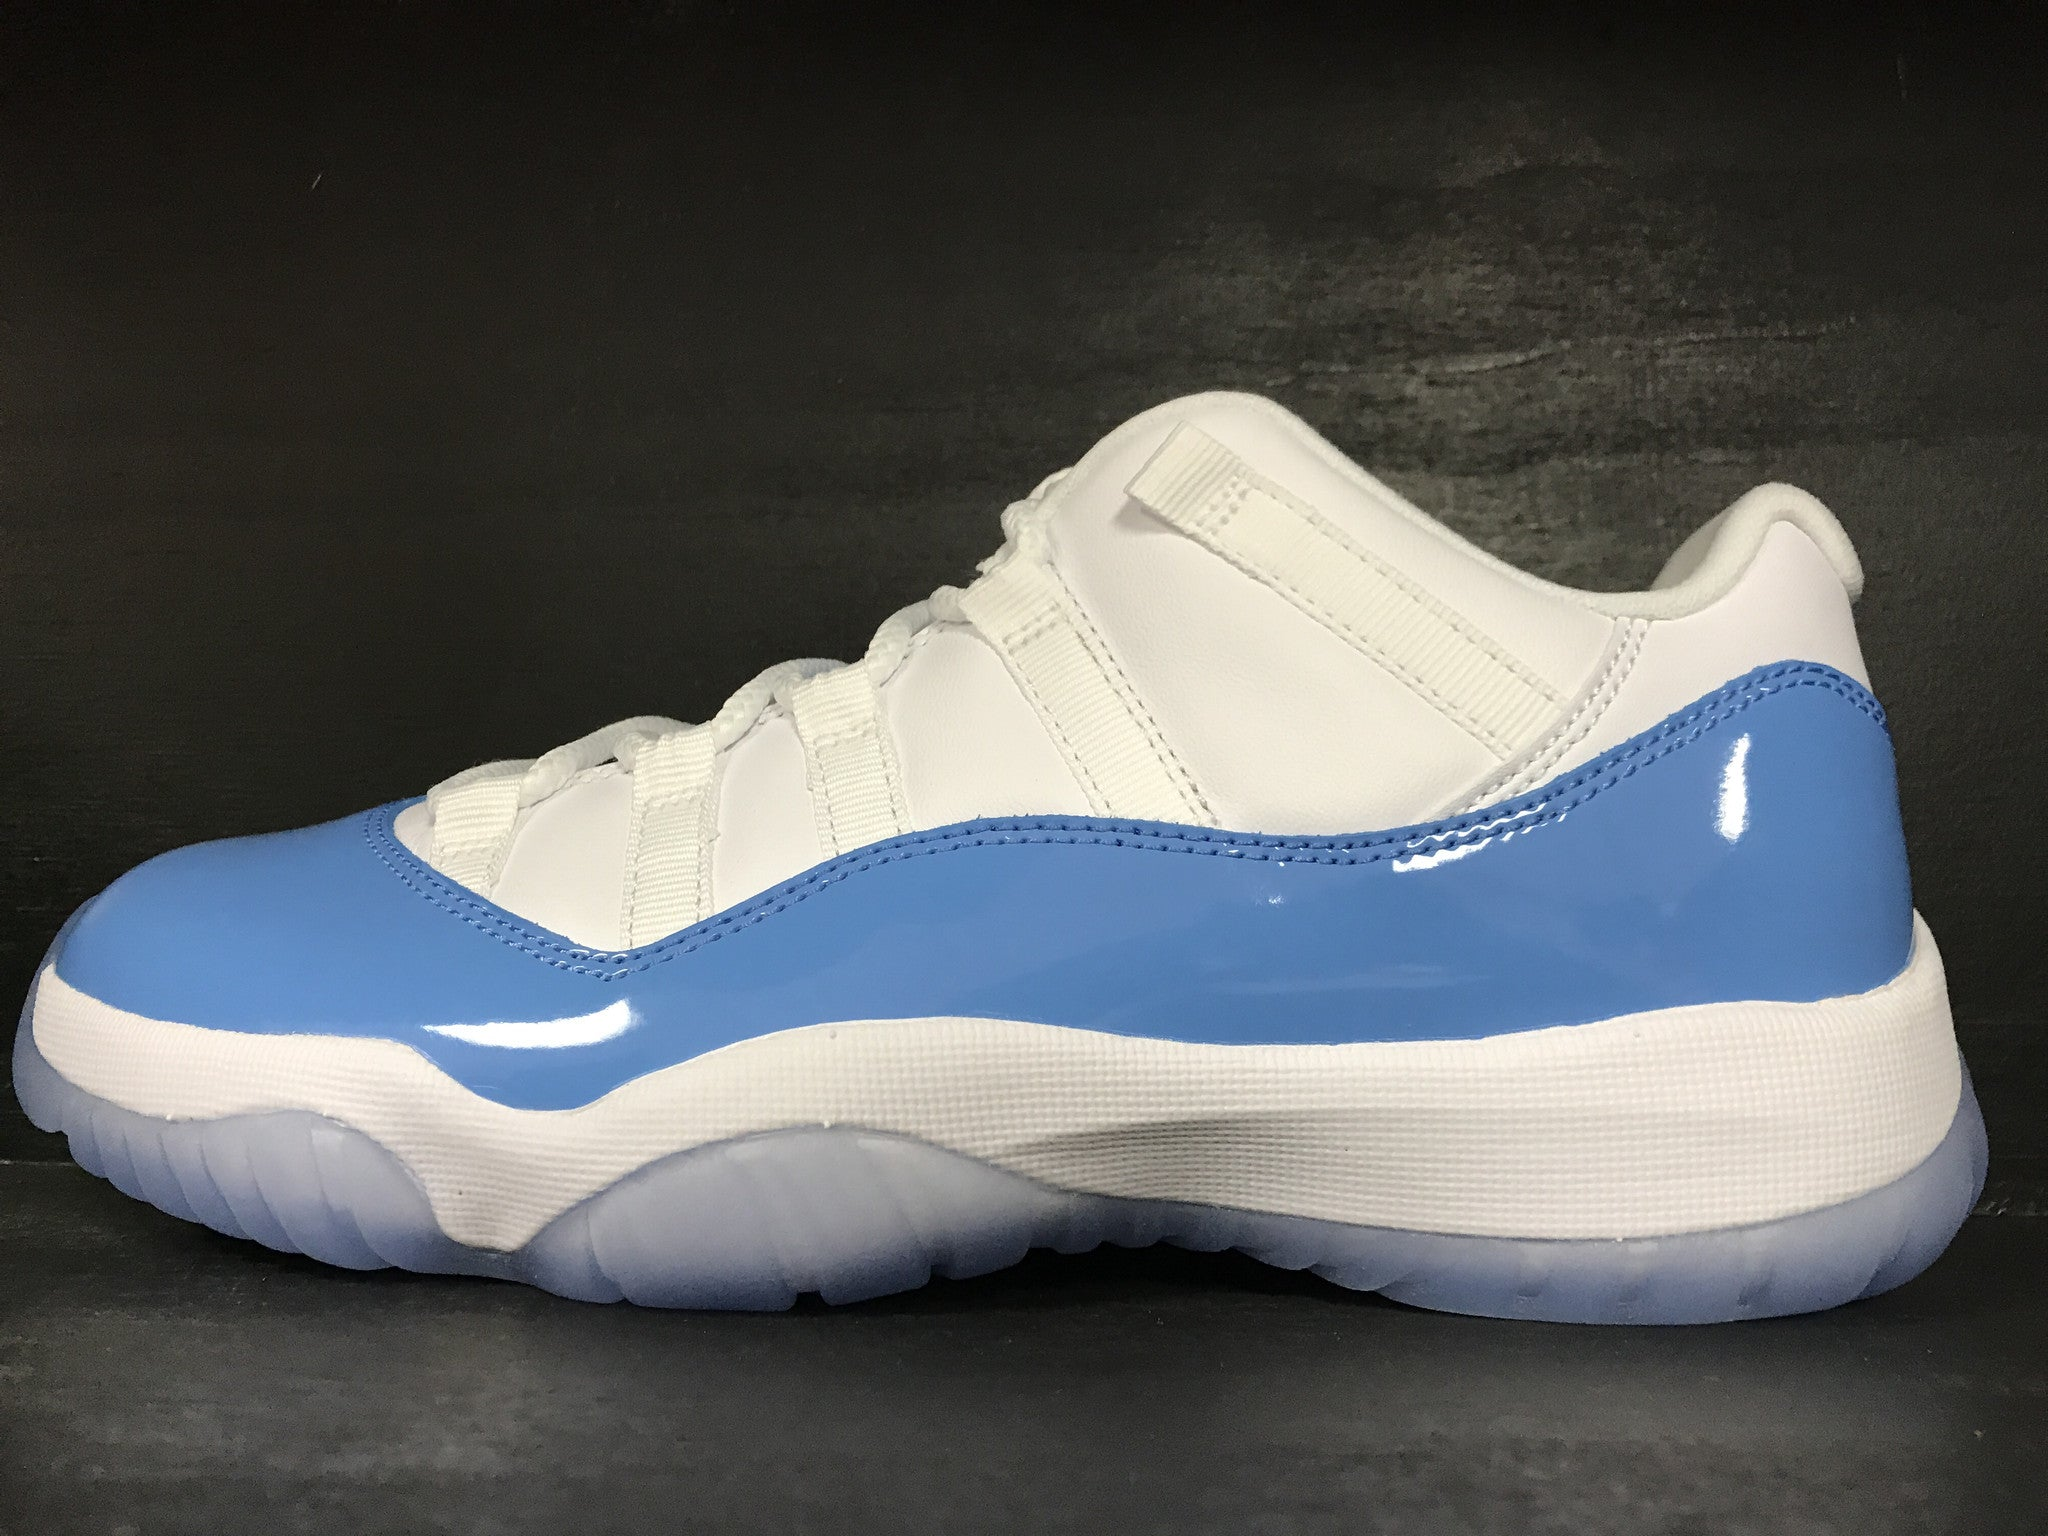 Air Jordan 11 Retro Low 'Columbia'